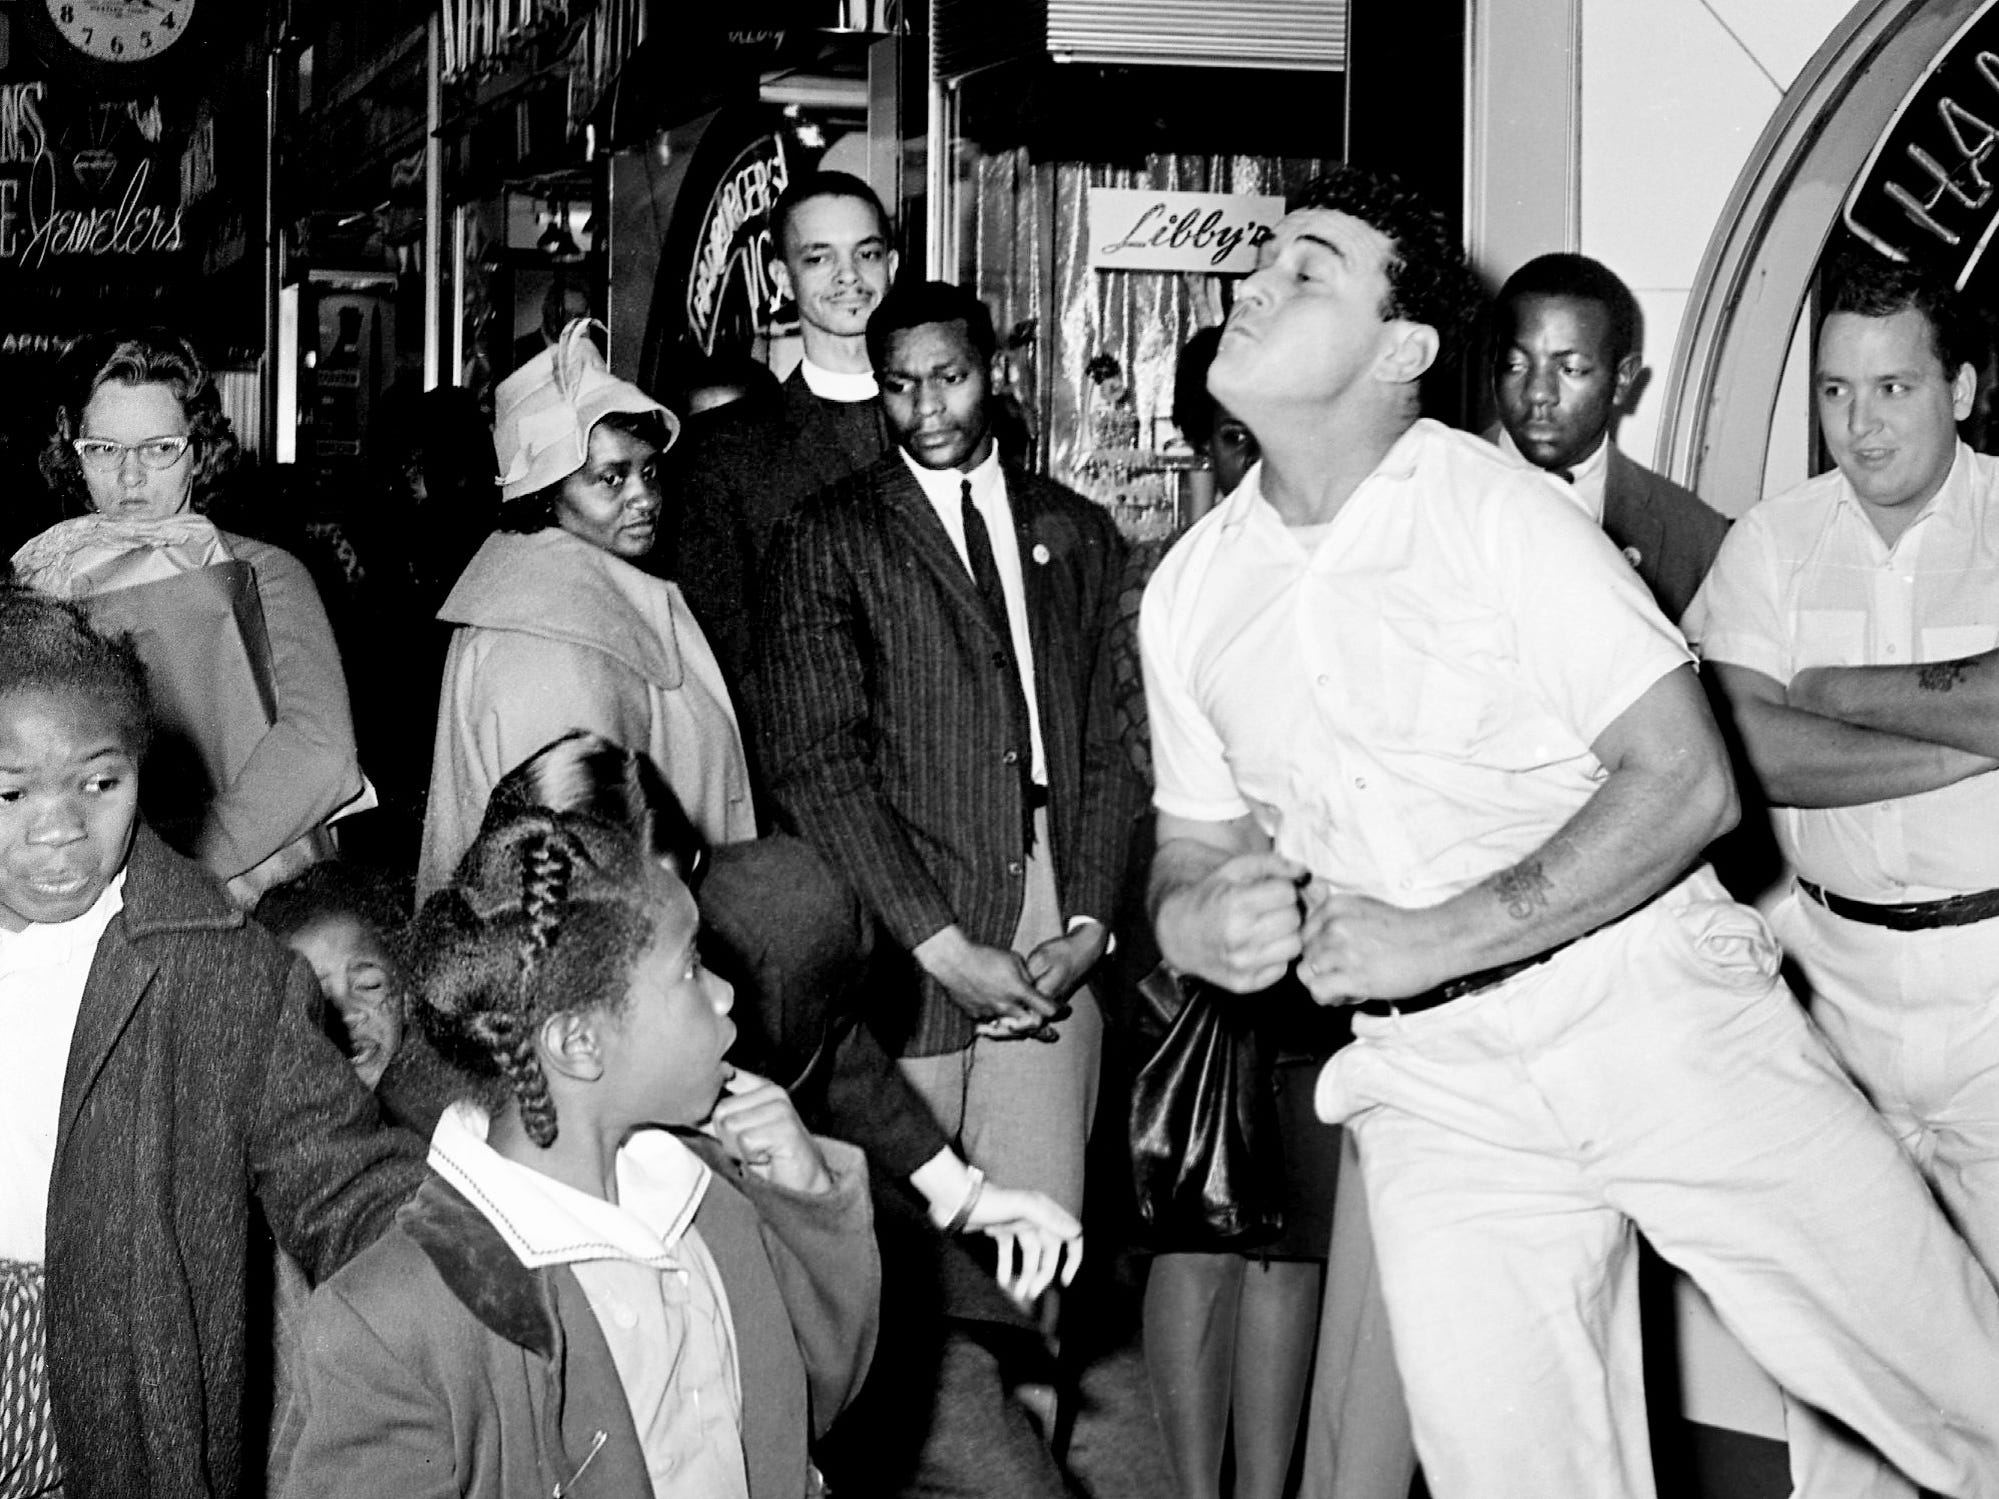 A little girl, left, watches in awe as Jan Emmert, a Fisk University student, lands behind her after he was shoved by Bobby Gene Taylor, a restaurant employee. The hassle came Dec. 1, 1962, during a sit-in attempt at the Herschel's Tic Toc restaurant on Church Street. Looking on are demonstrators Lester McKinnie, center, and the Rev. J. Metz Rollins, behind McKinnie.